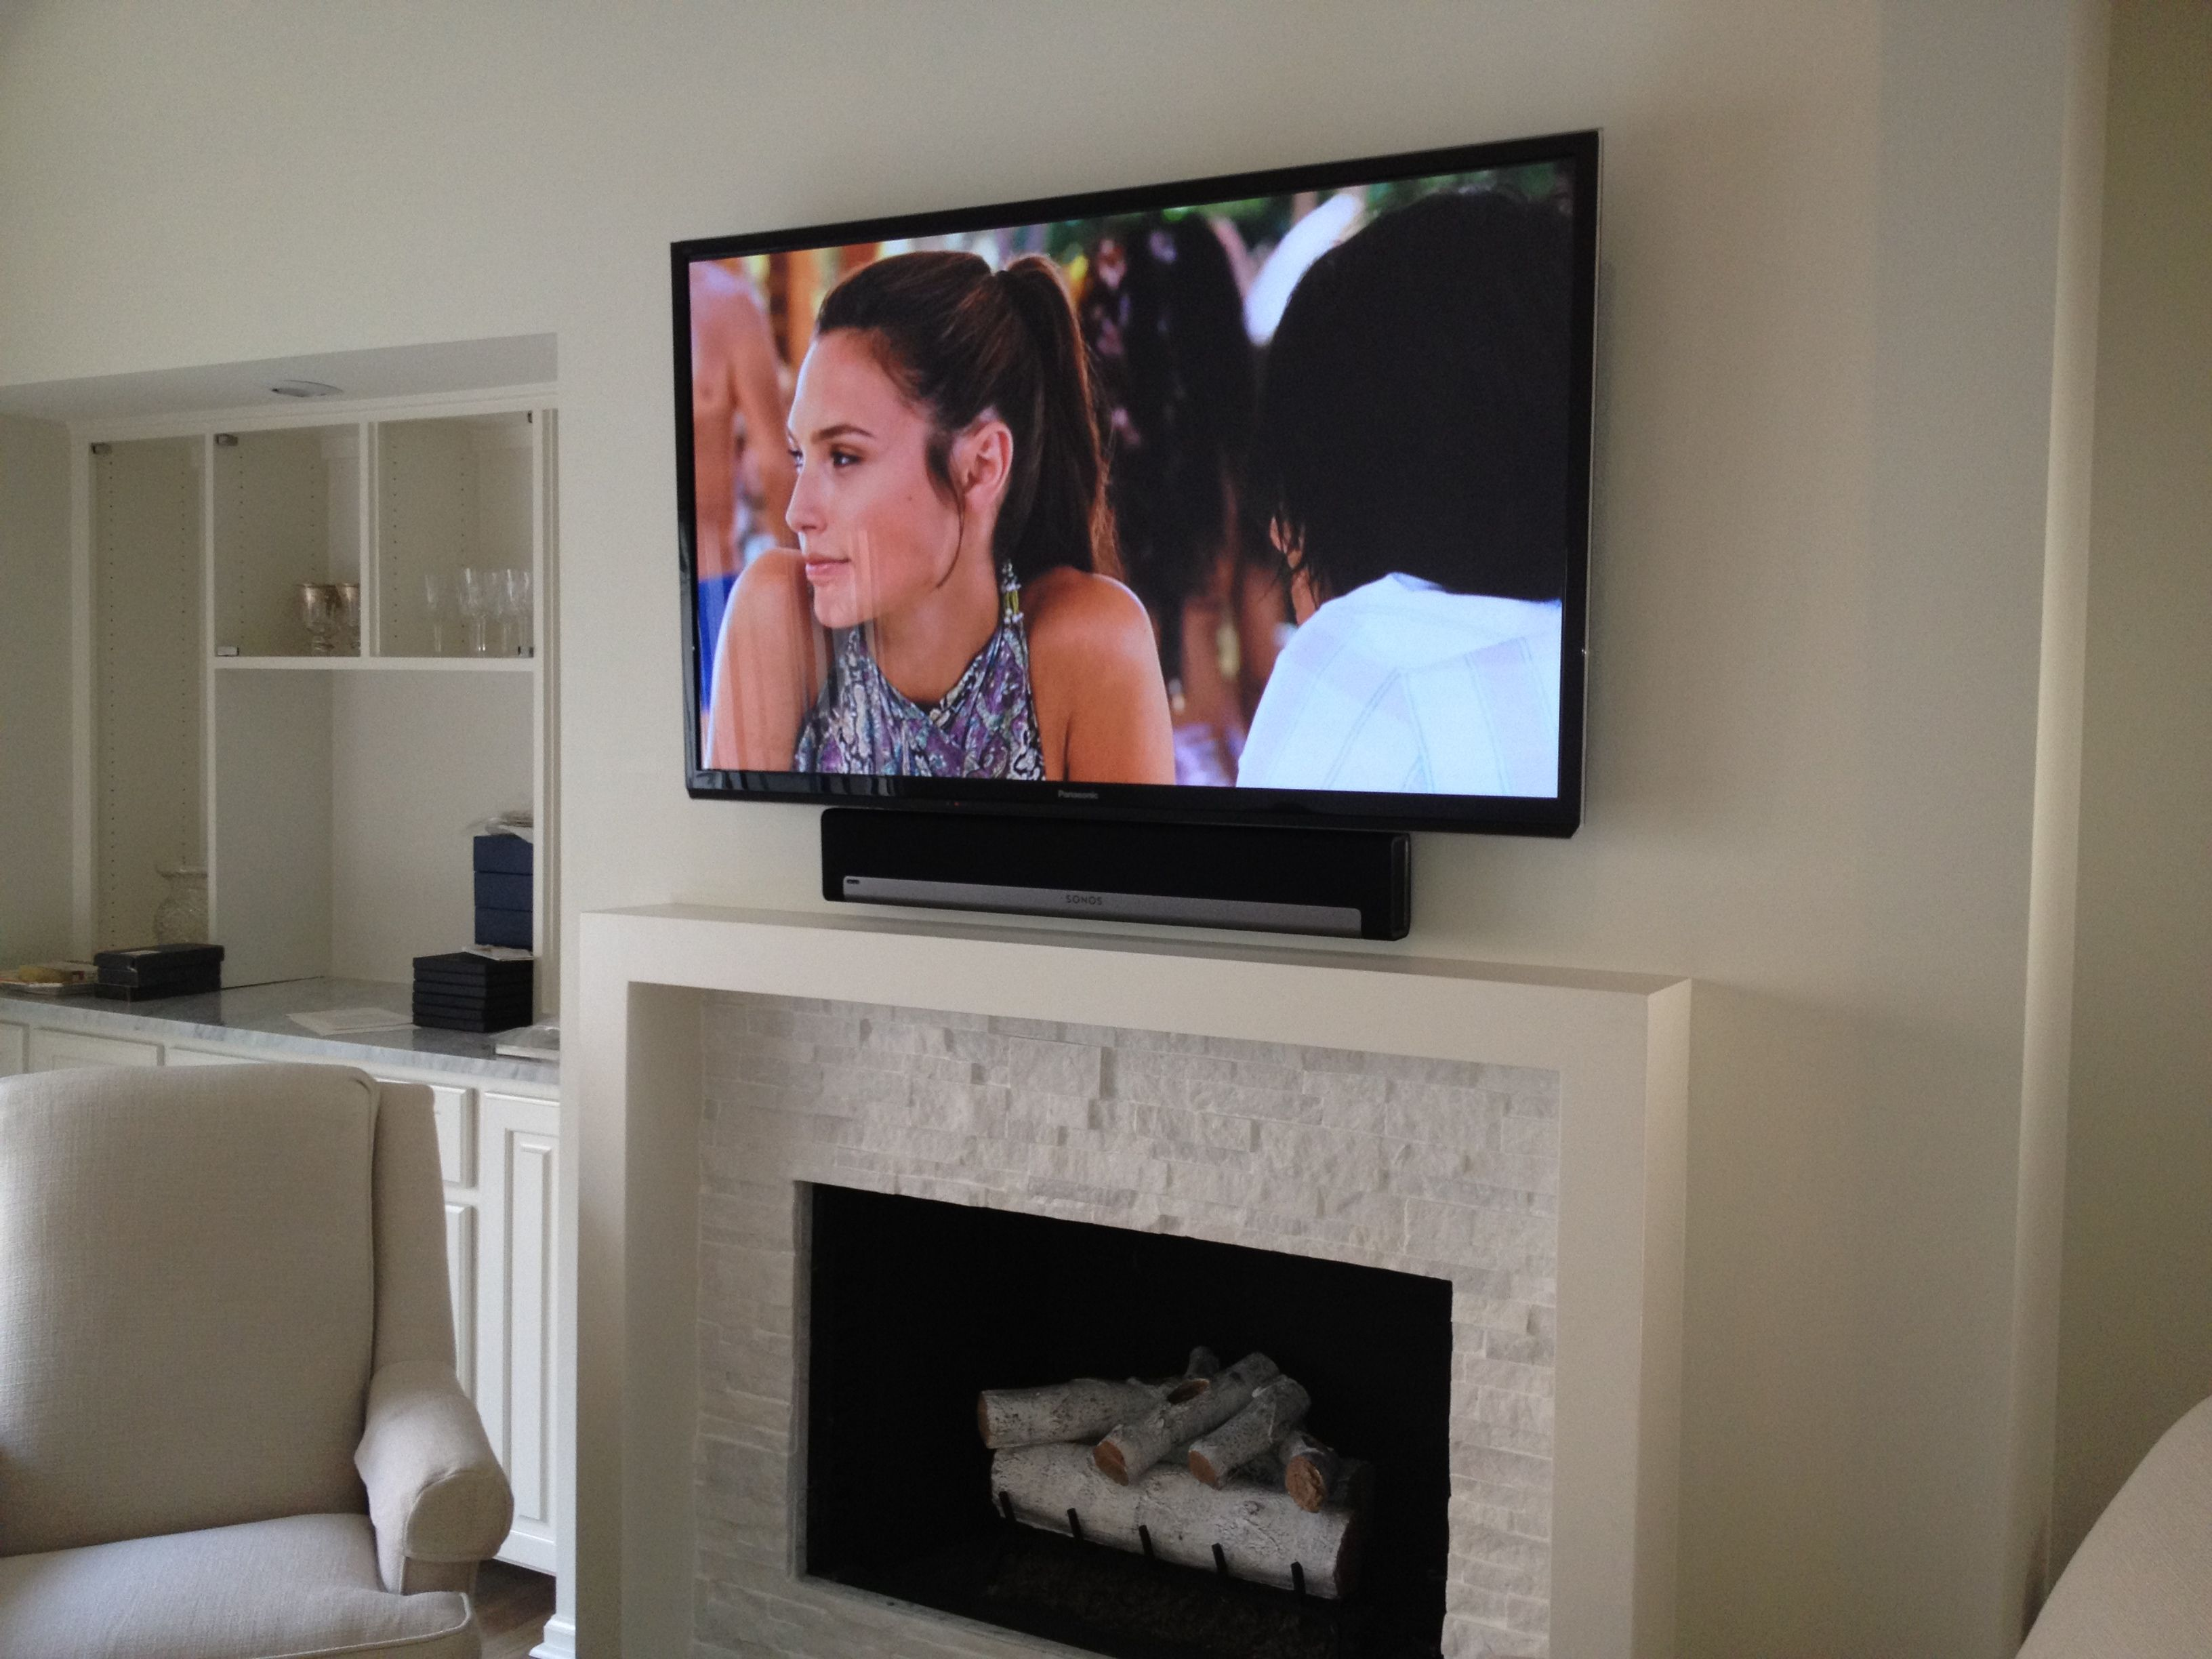 60 Quot Display And Sonos Playbar Mounted Above A Fireplace